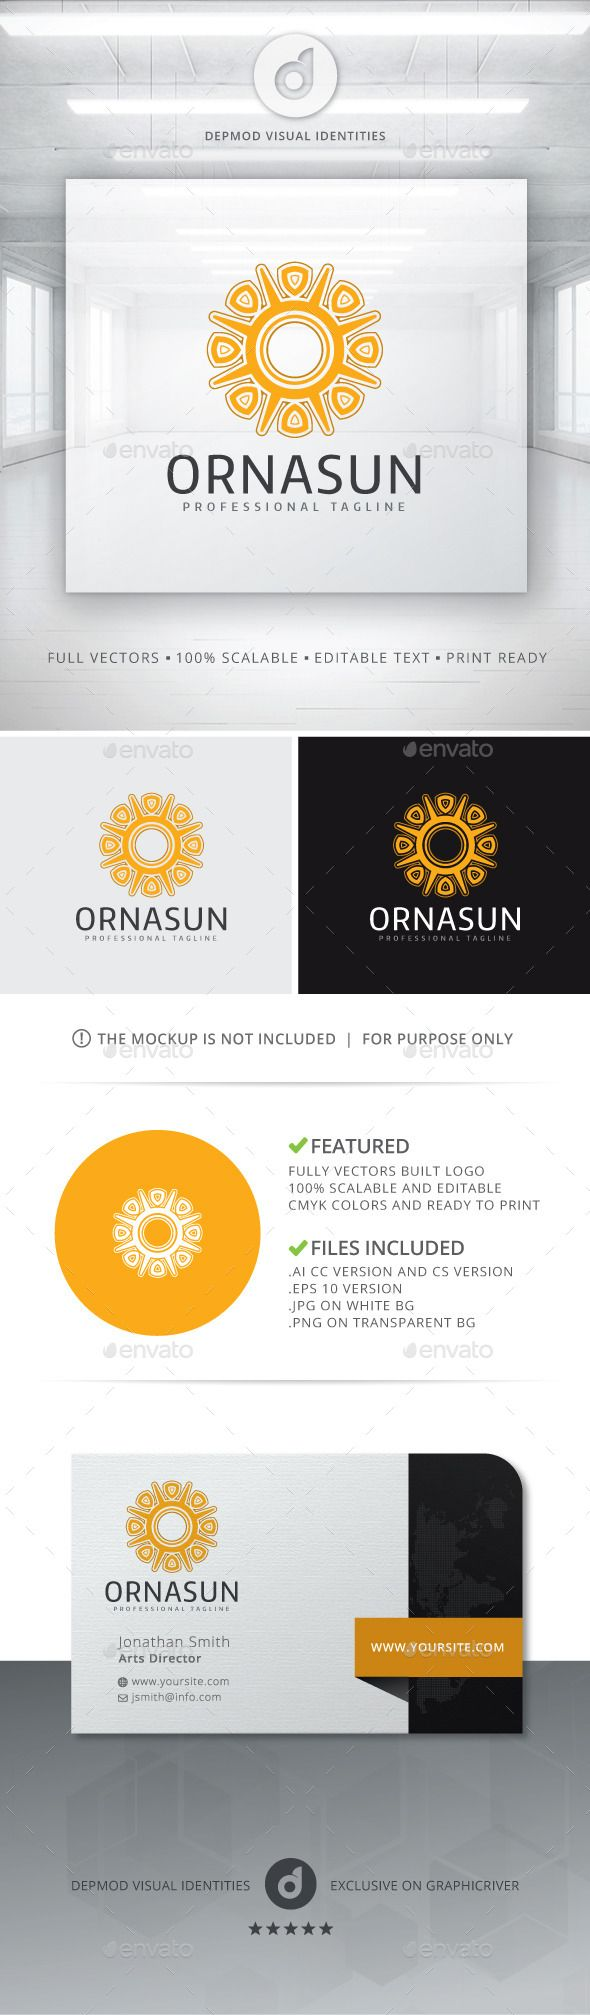 Ornasun Logo (JPG Image, Vector EPS, AI Illustrator, Resizable, CS, abstract, abstract sun, ancient, brand, branding, crest, distinguished, elegant, emblem, gold, identity, jewel, jewelery, jewelry, medal, medalion, myth, mythical, ornament, professional, ray, refined, shield, sun, sunny, tattoo, tribal, vintage, yellow)